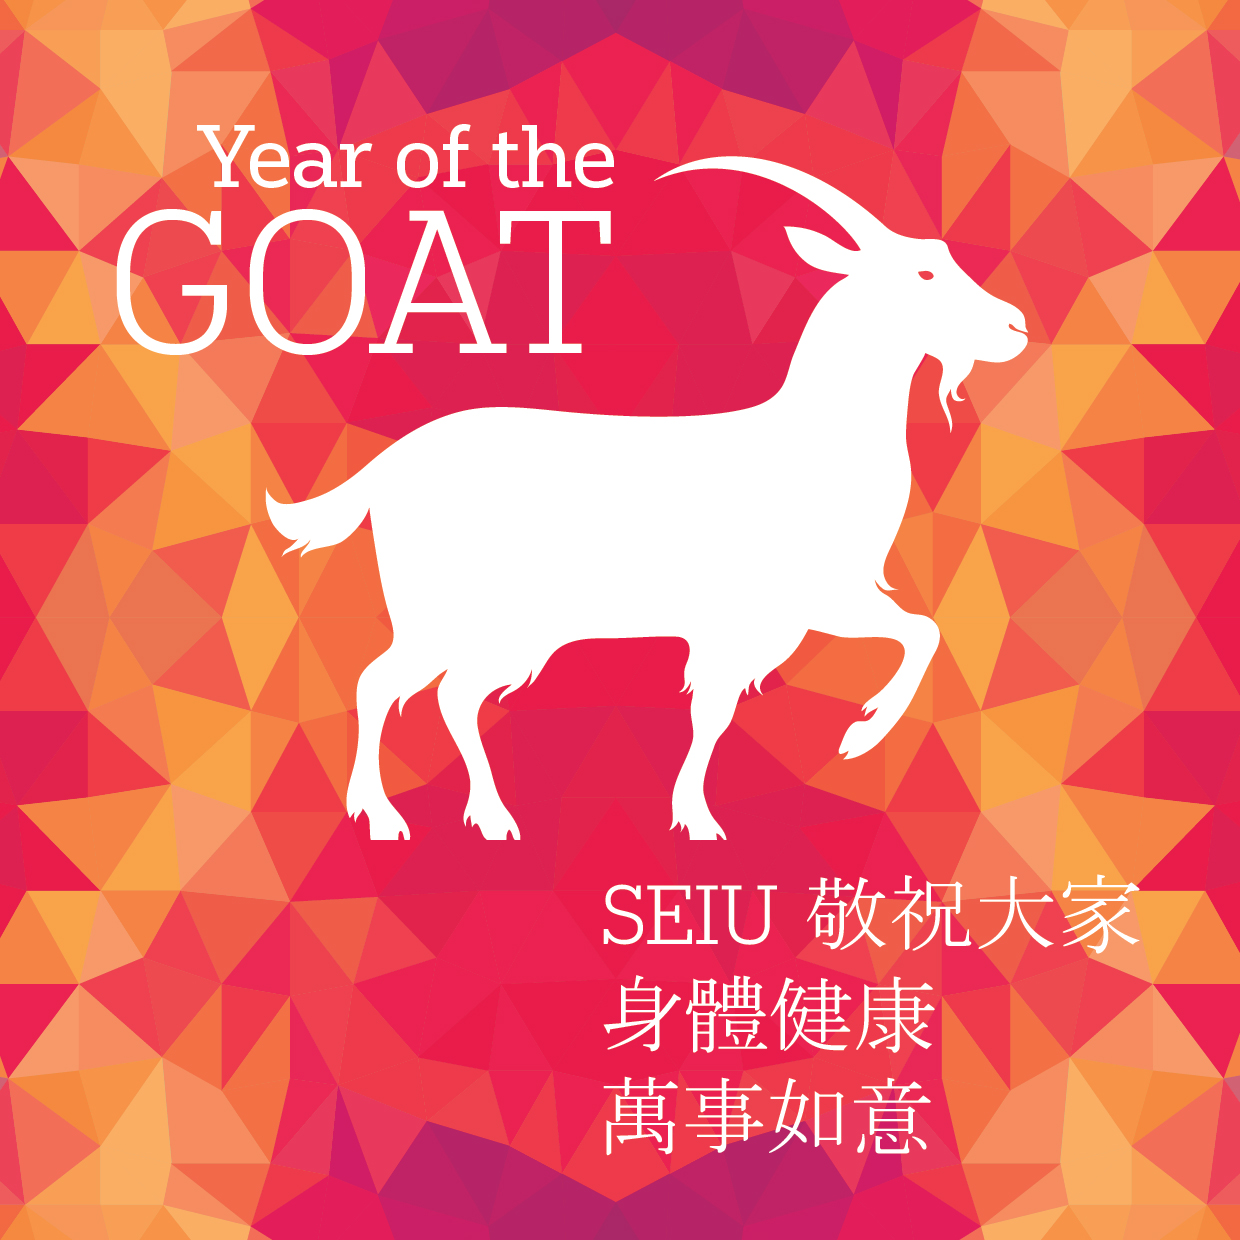 seiu healthcare happy chinese new year year of the goat